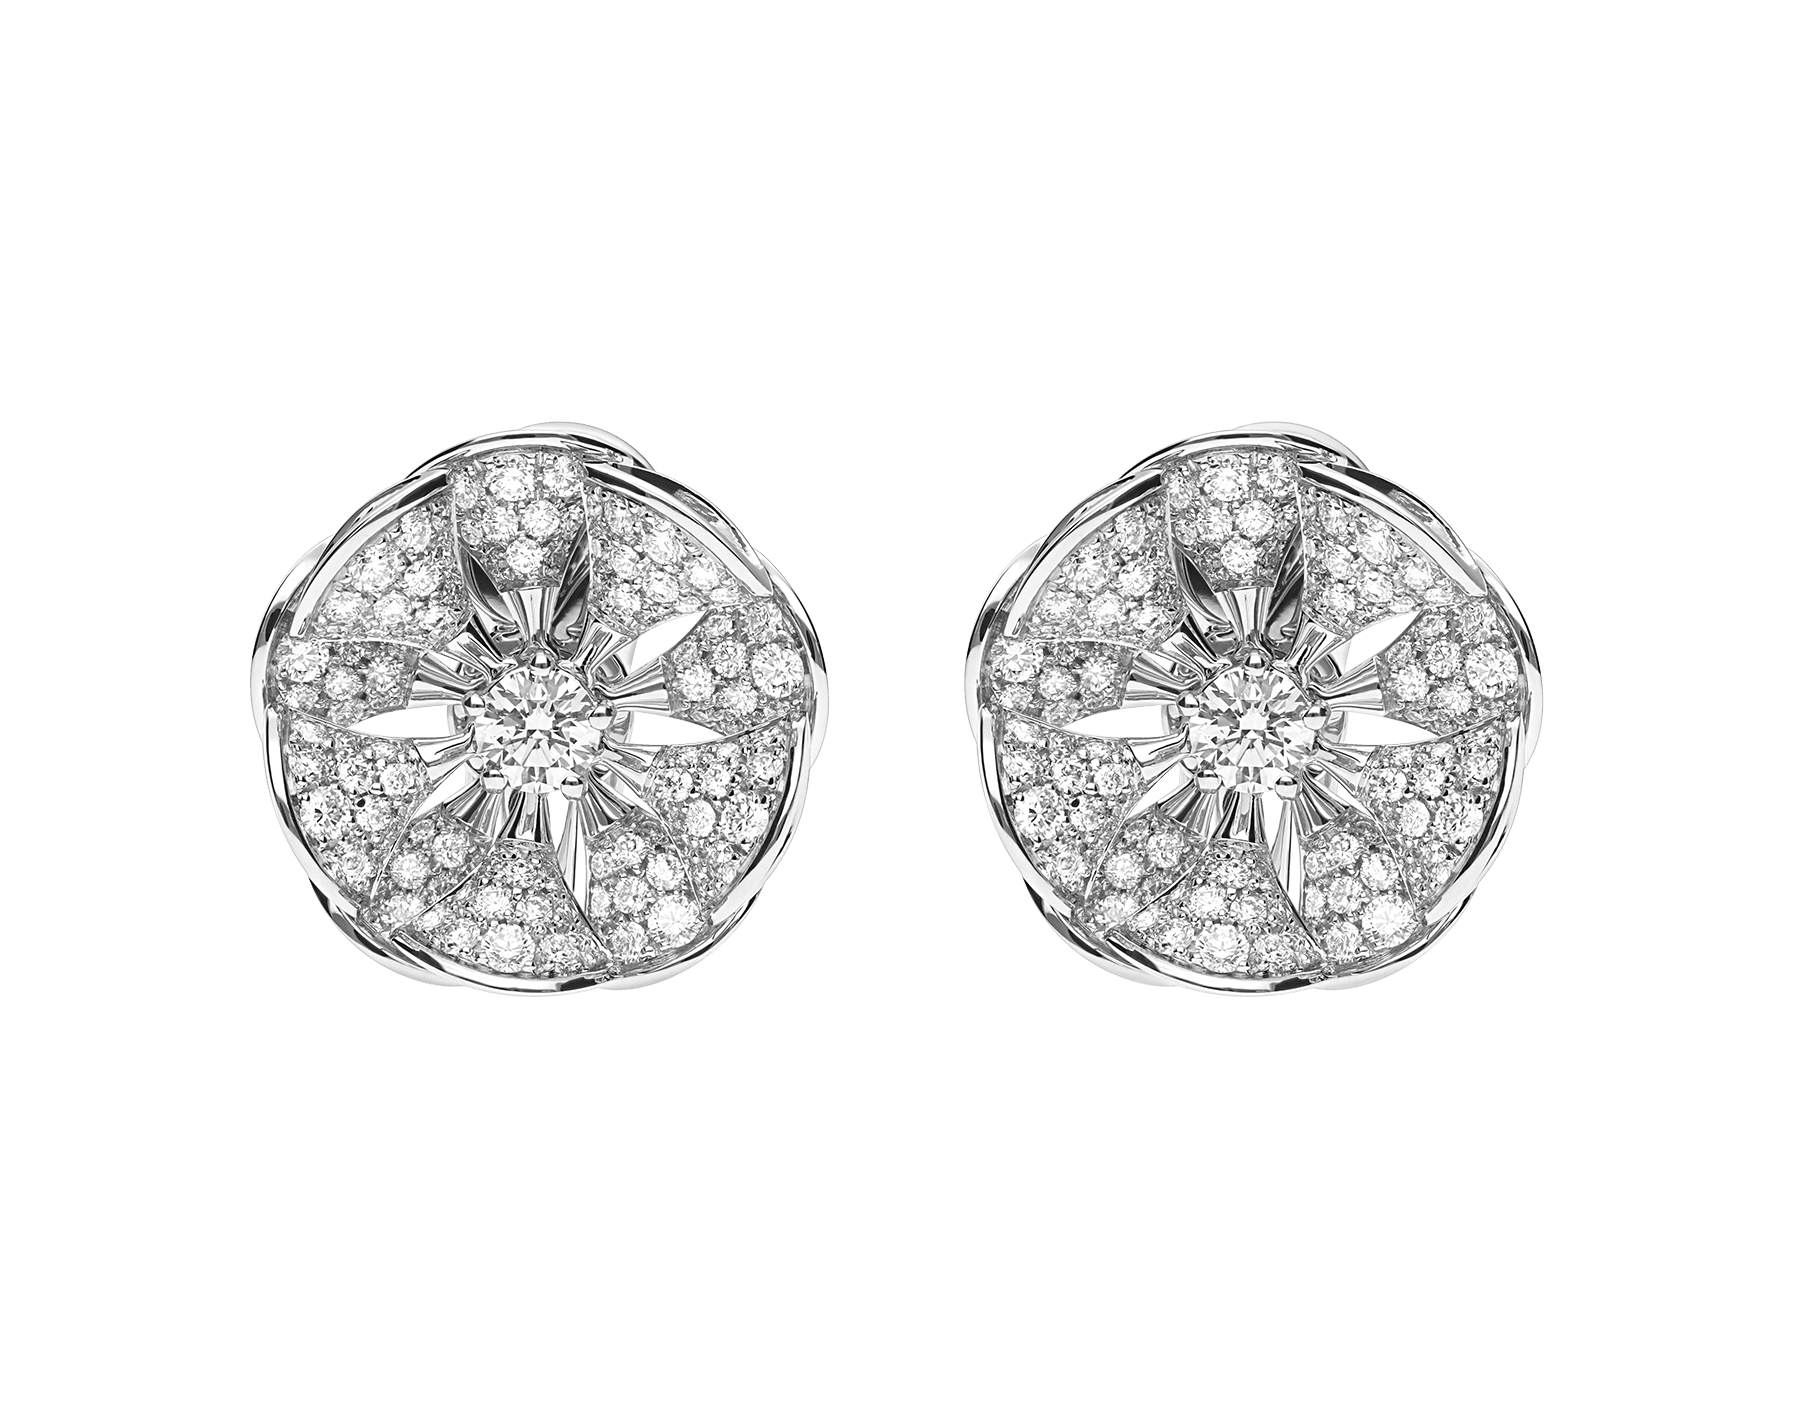 DIVAS' DREAM earrings in 18 kt white gold set with a central diamond and full pavé diamonds. 350785 image 1